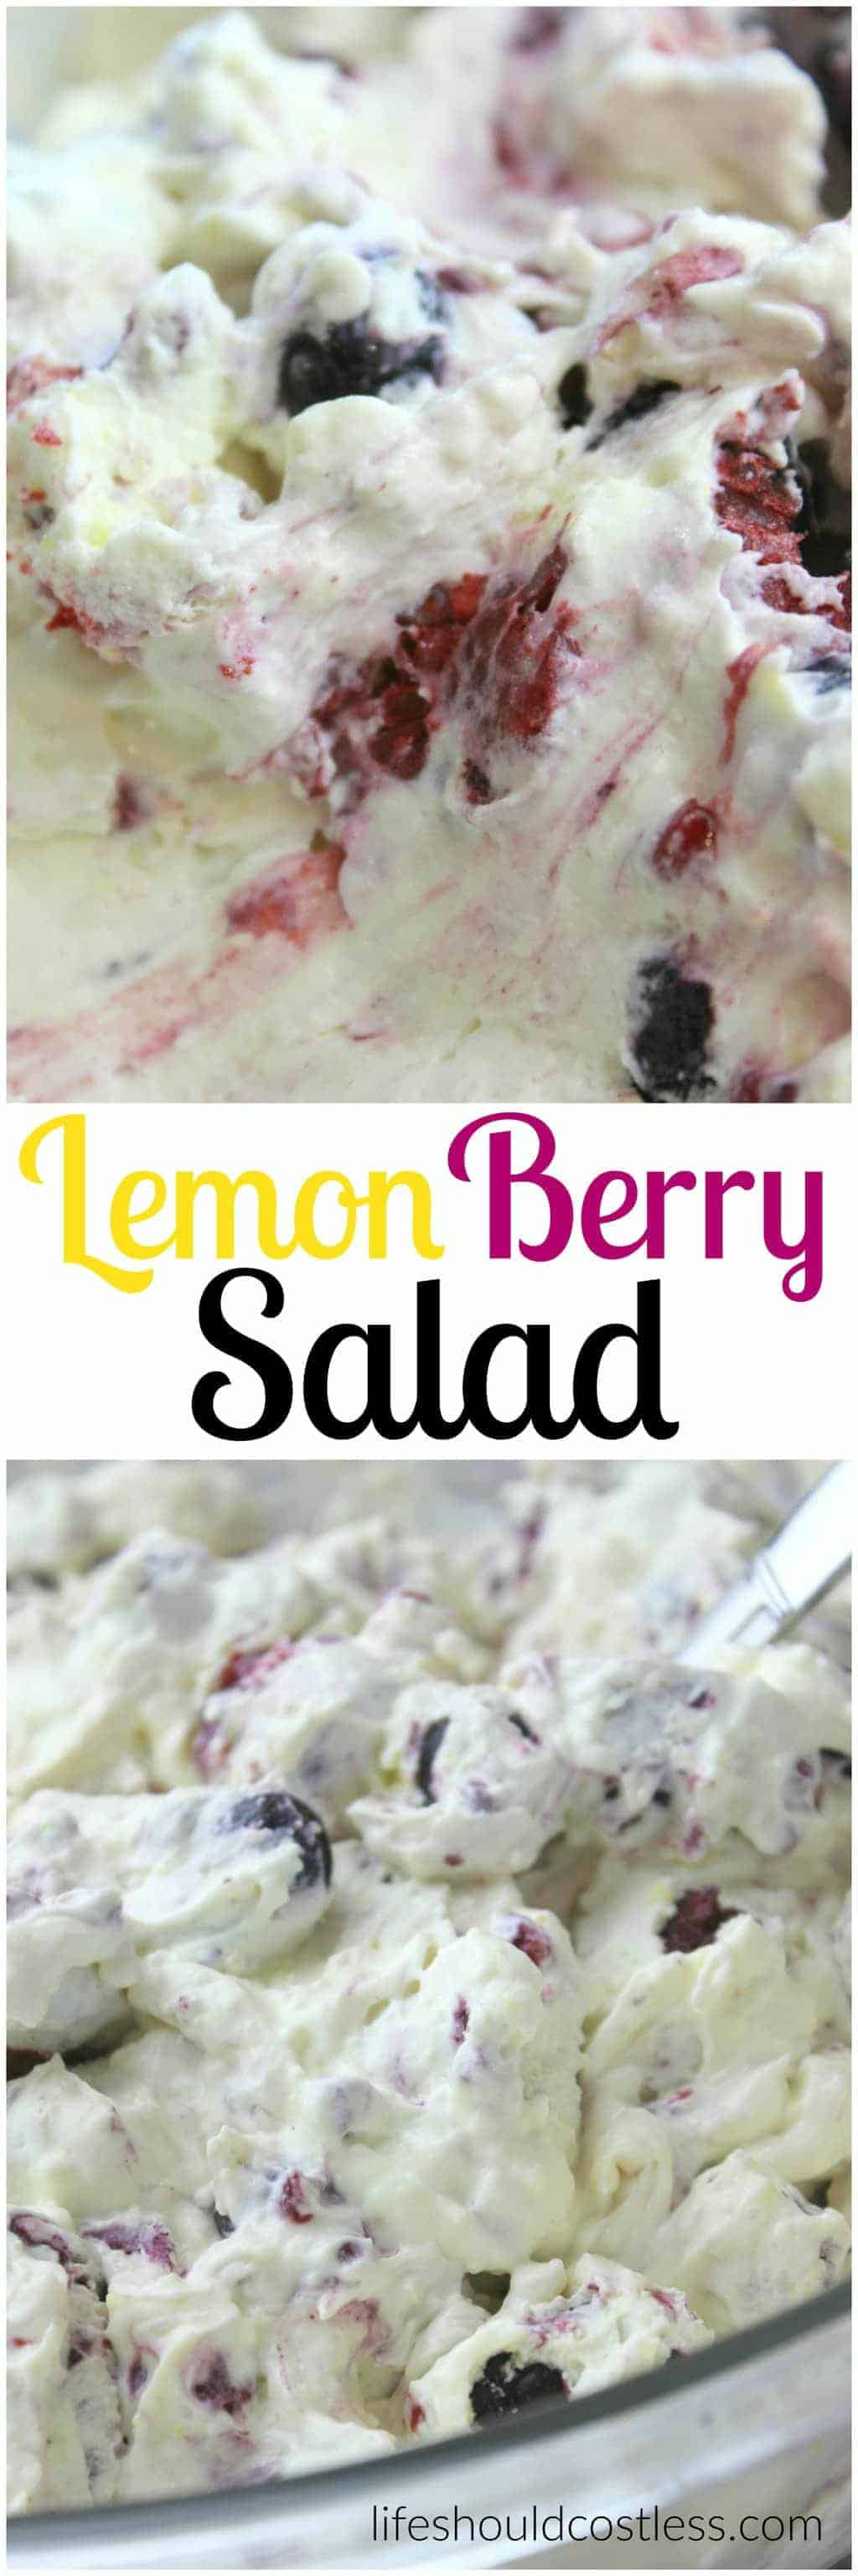 The best part is that this Lemon Berry Salad is low-fat, high in protein, has just the right amount of lemon flavor and has a fantastic blend of different berries. It's knock your socks off good. lifeshouldcostless.com